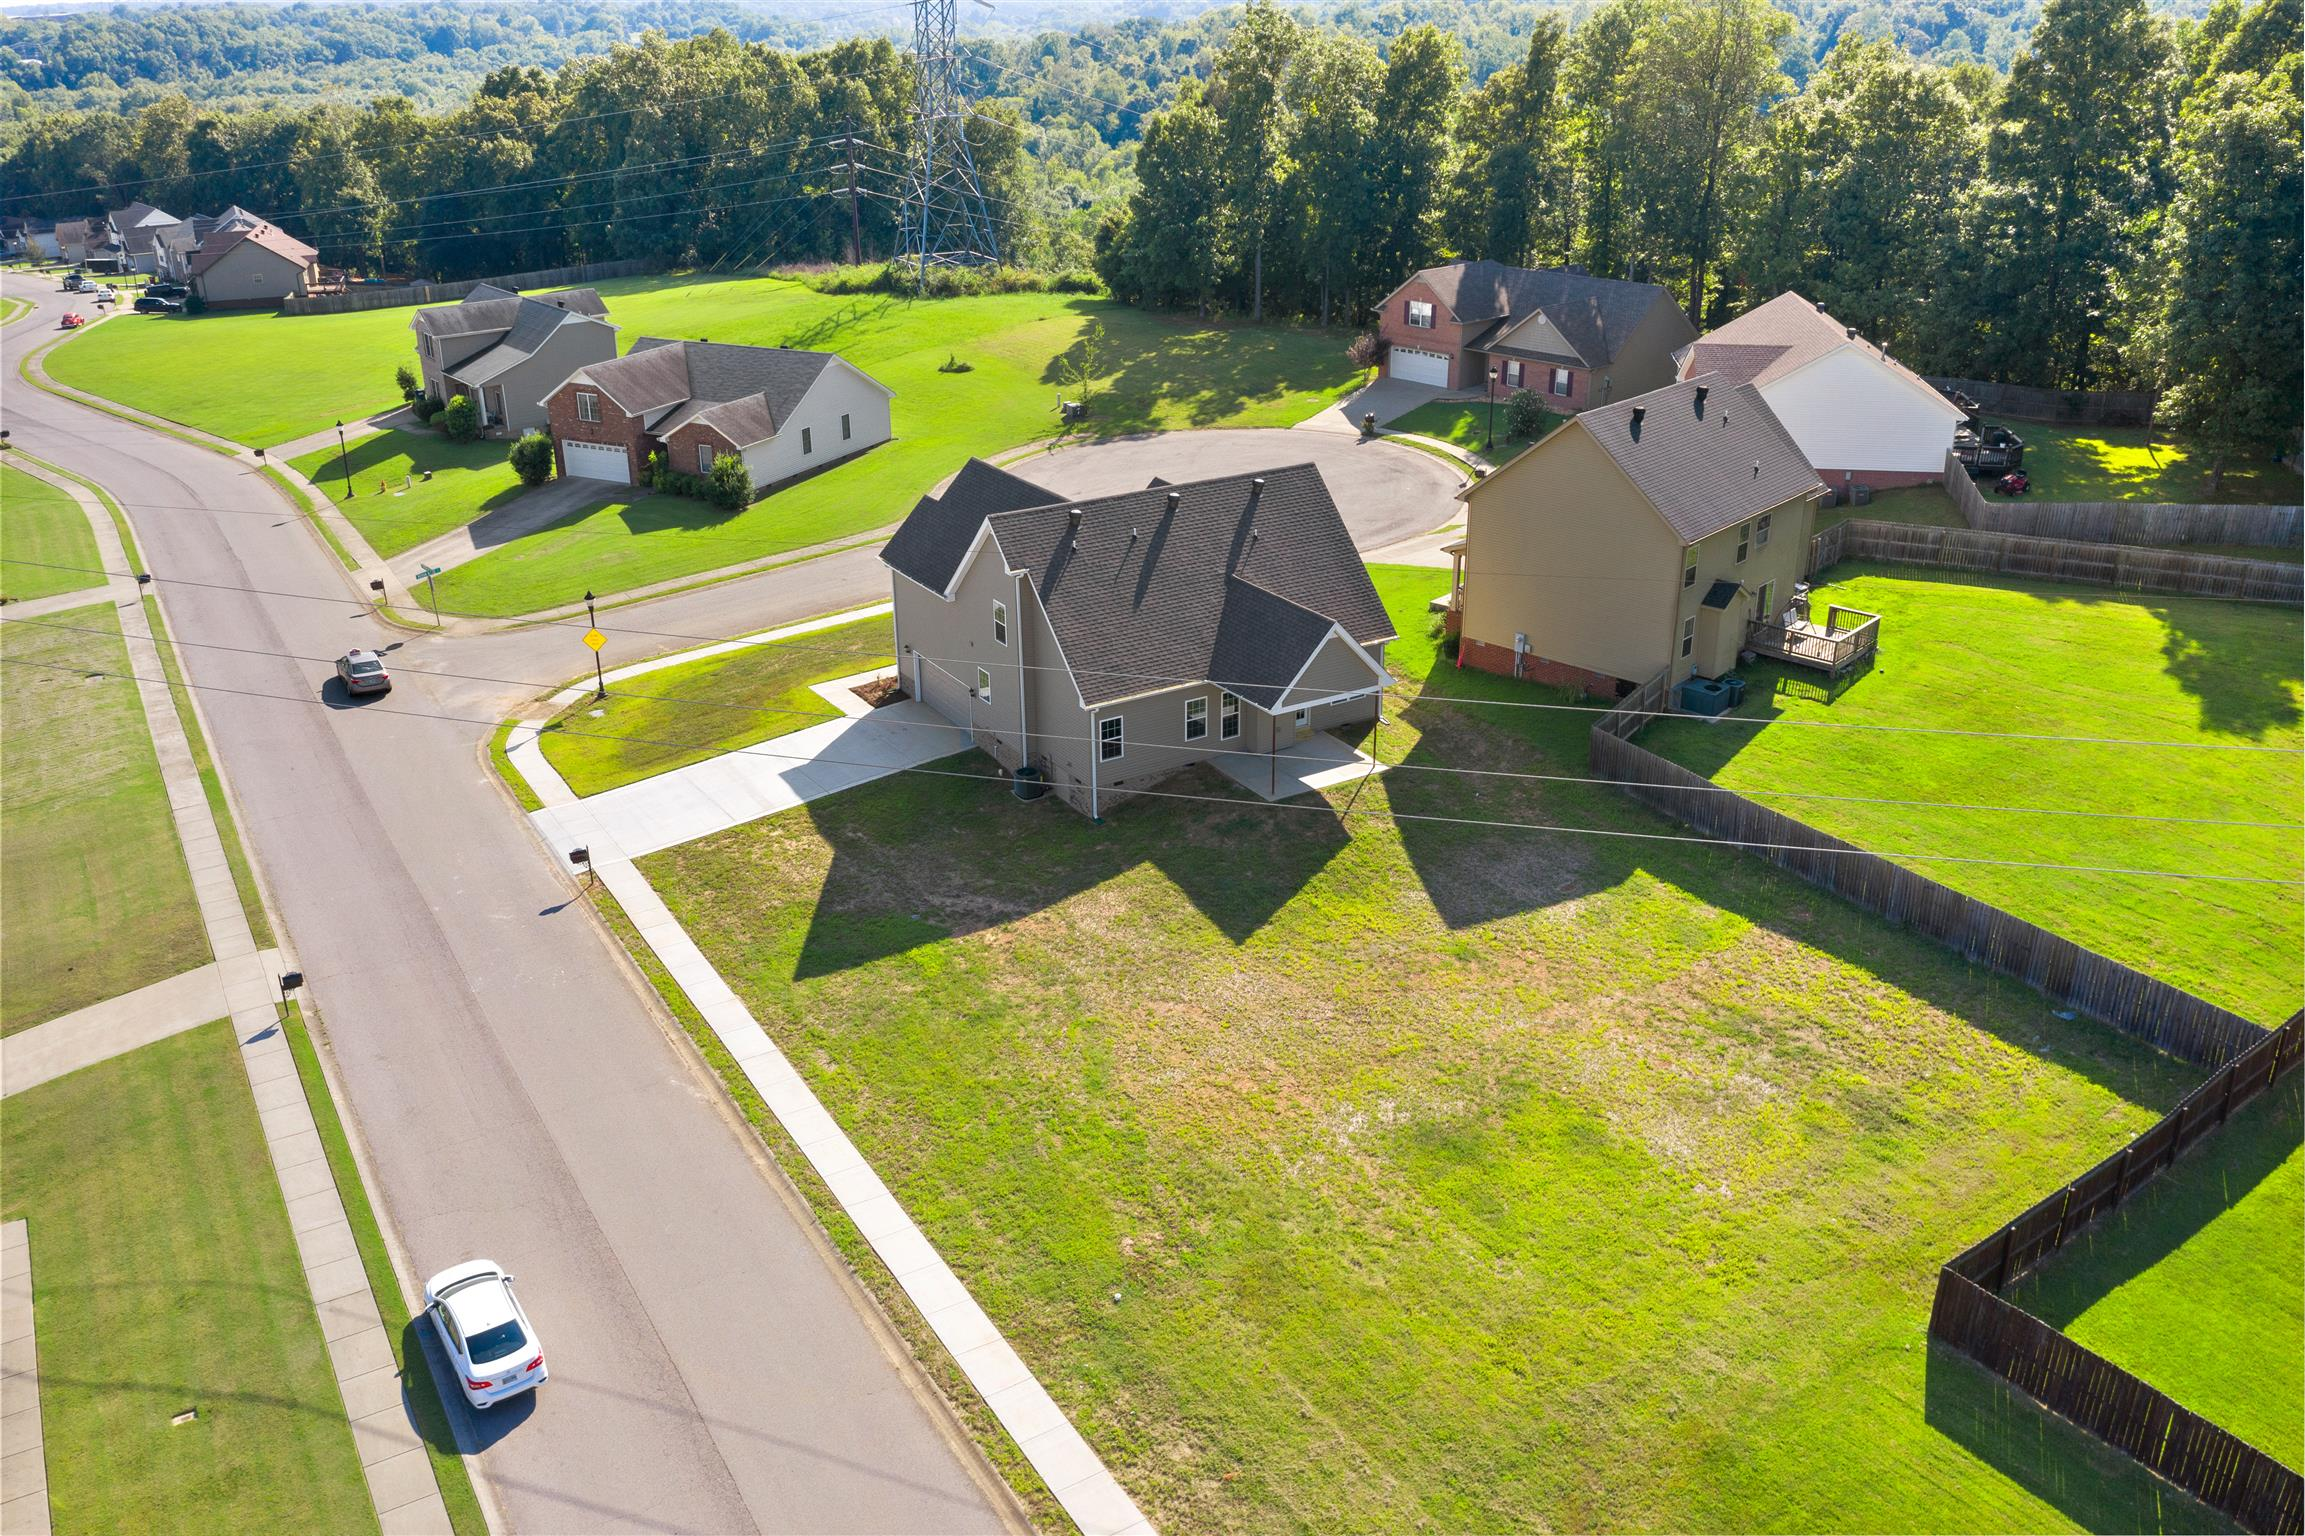 1830 Patricia Dr, Clarksville, TN 37040 - Clarksville, TN real estate listing